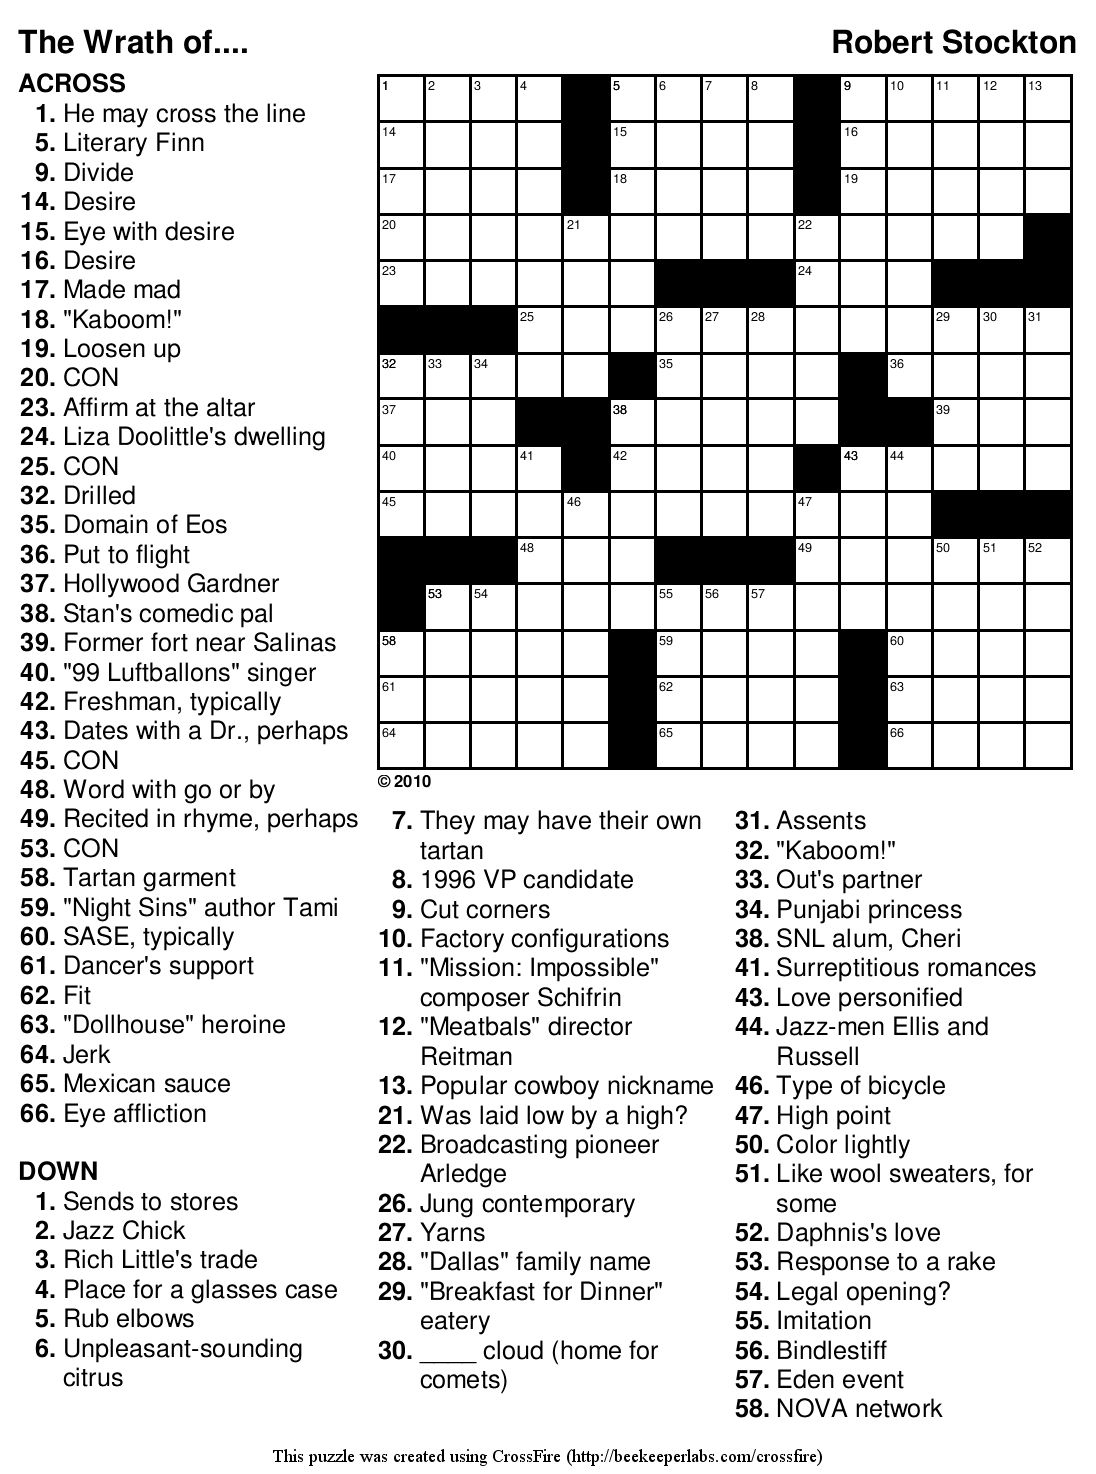 Marvelous Crossword Puzzles Easy Printable Free Org | Chas's Board - Printable Newspaper Crossword Puzzles For Free